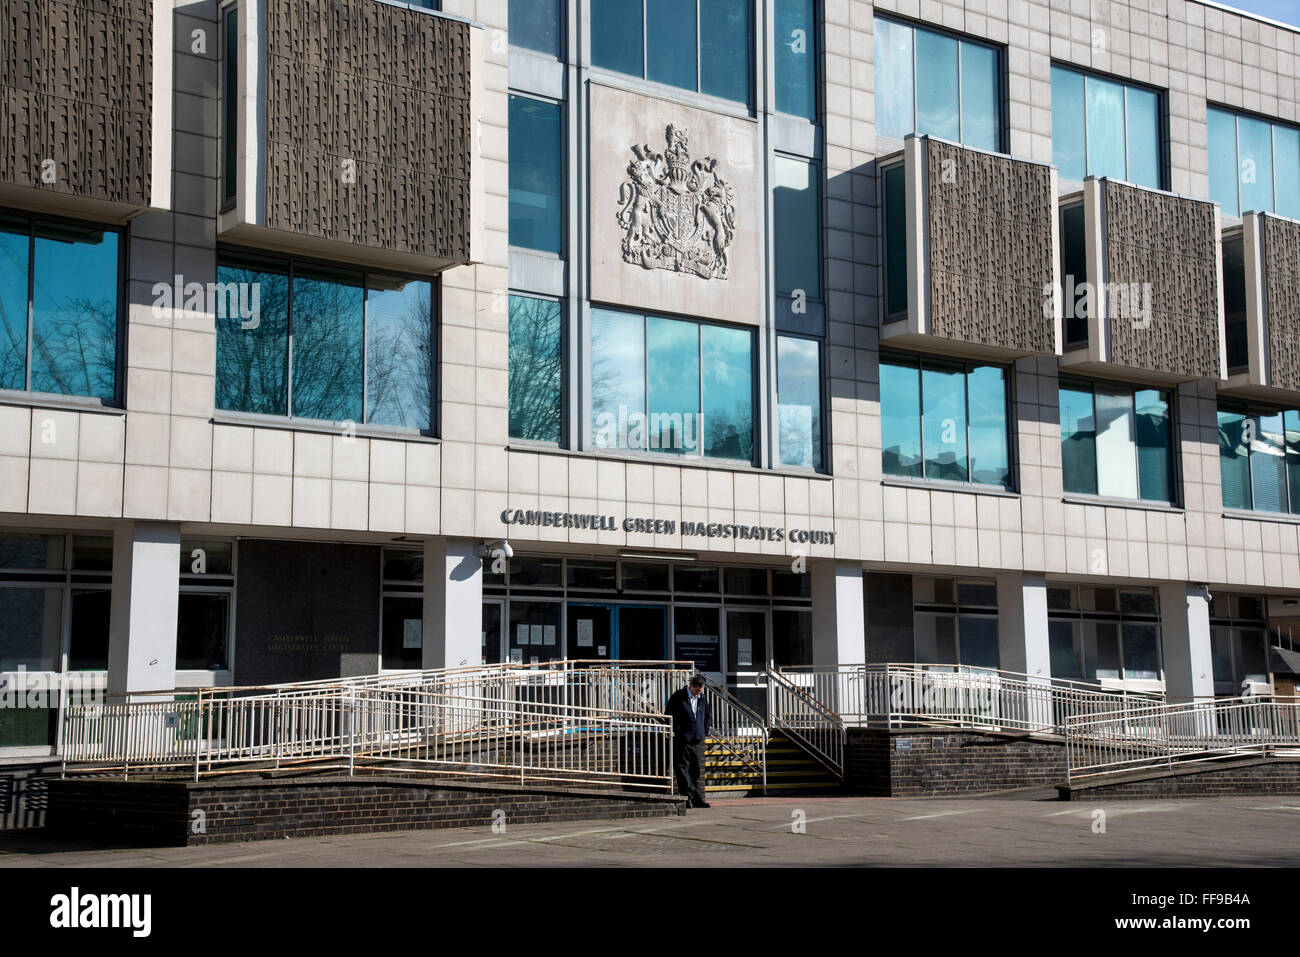 Camberwell Green Magistrates Court entrée GV Photo Stock